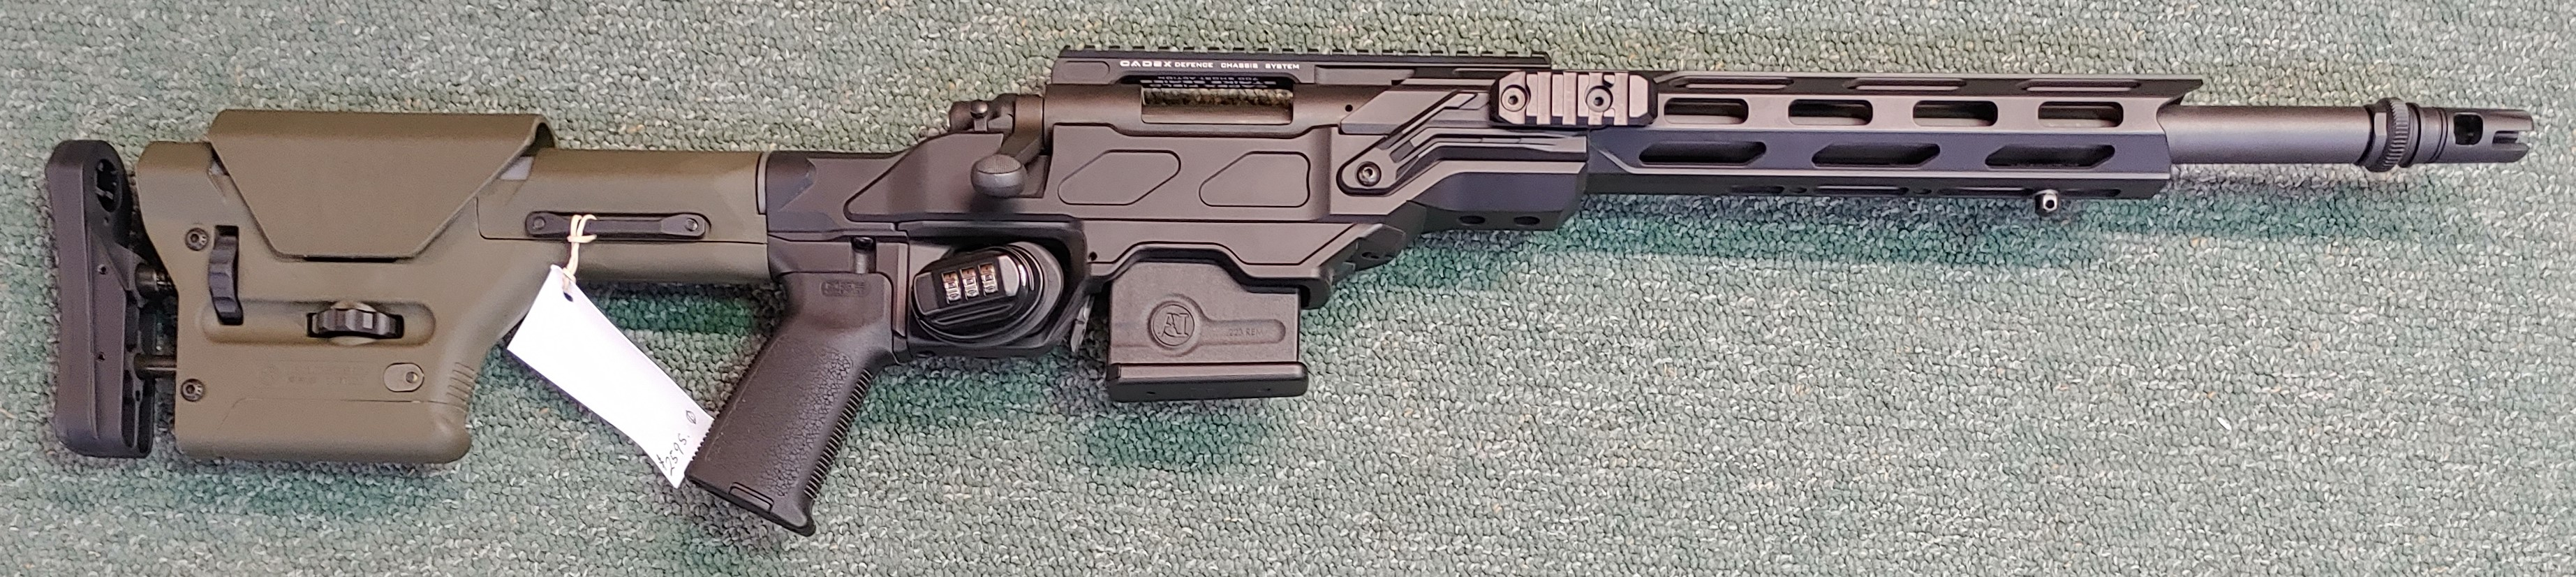 Remington SPS Tactical in Custom Cadex stock .223